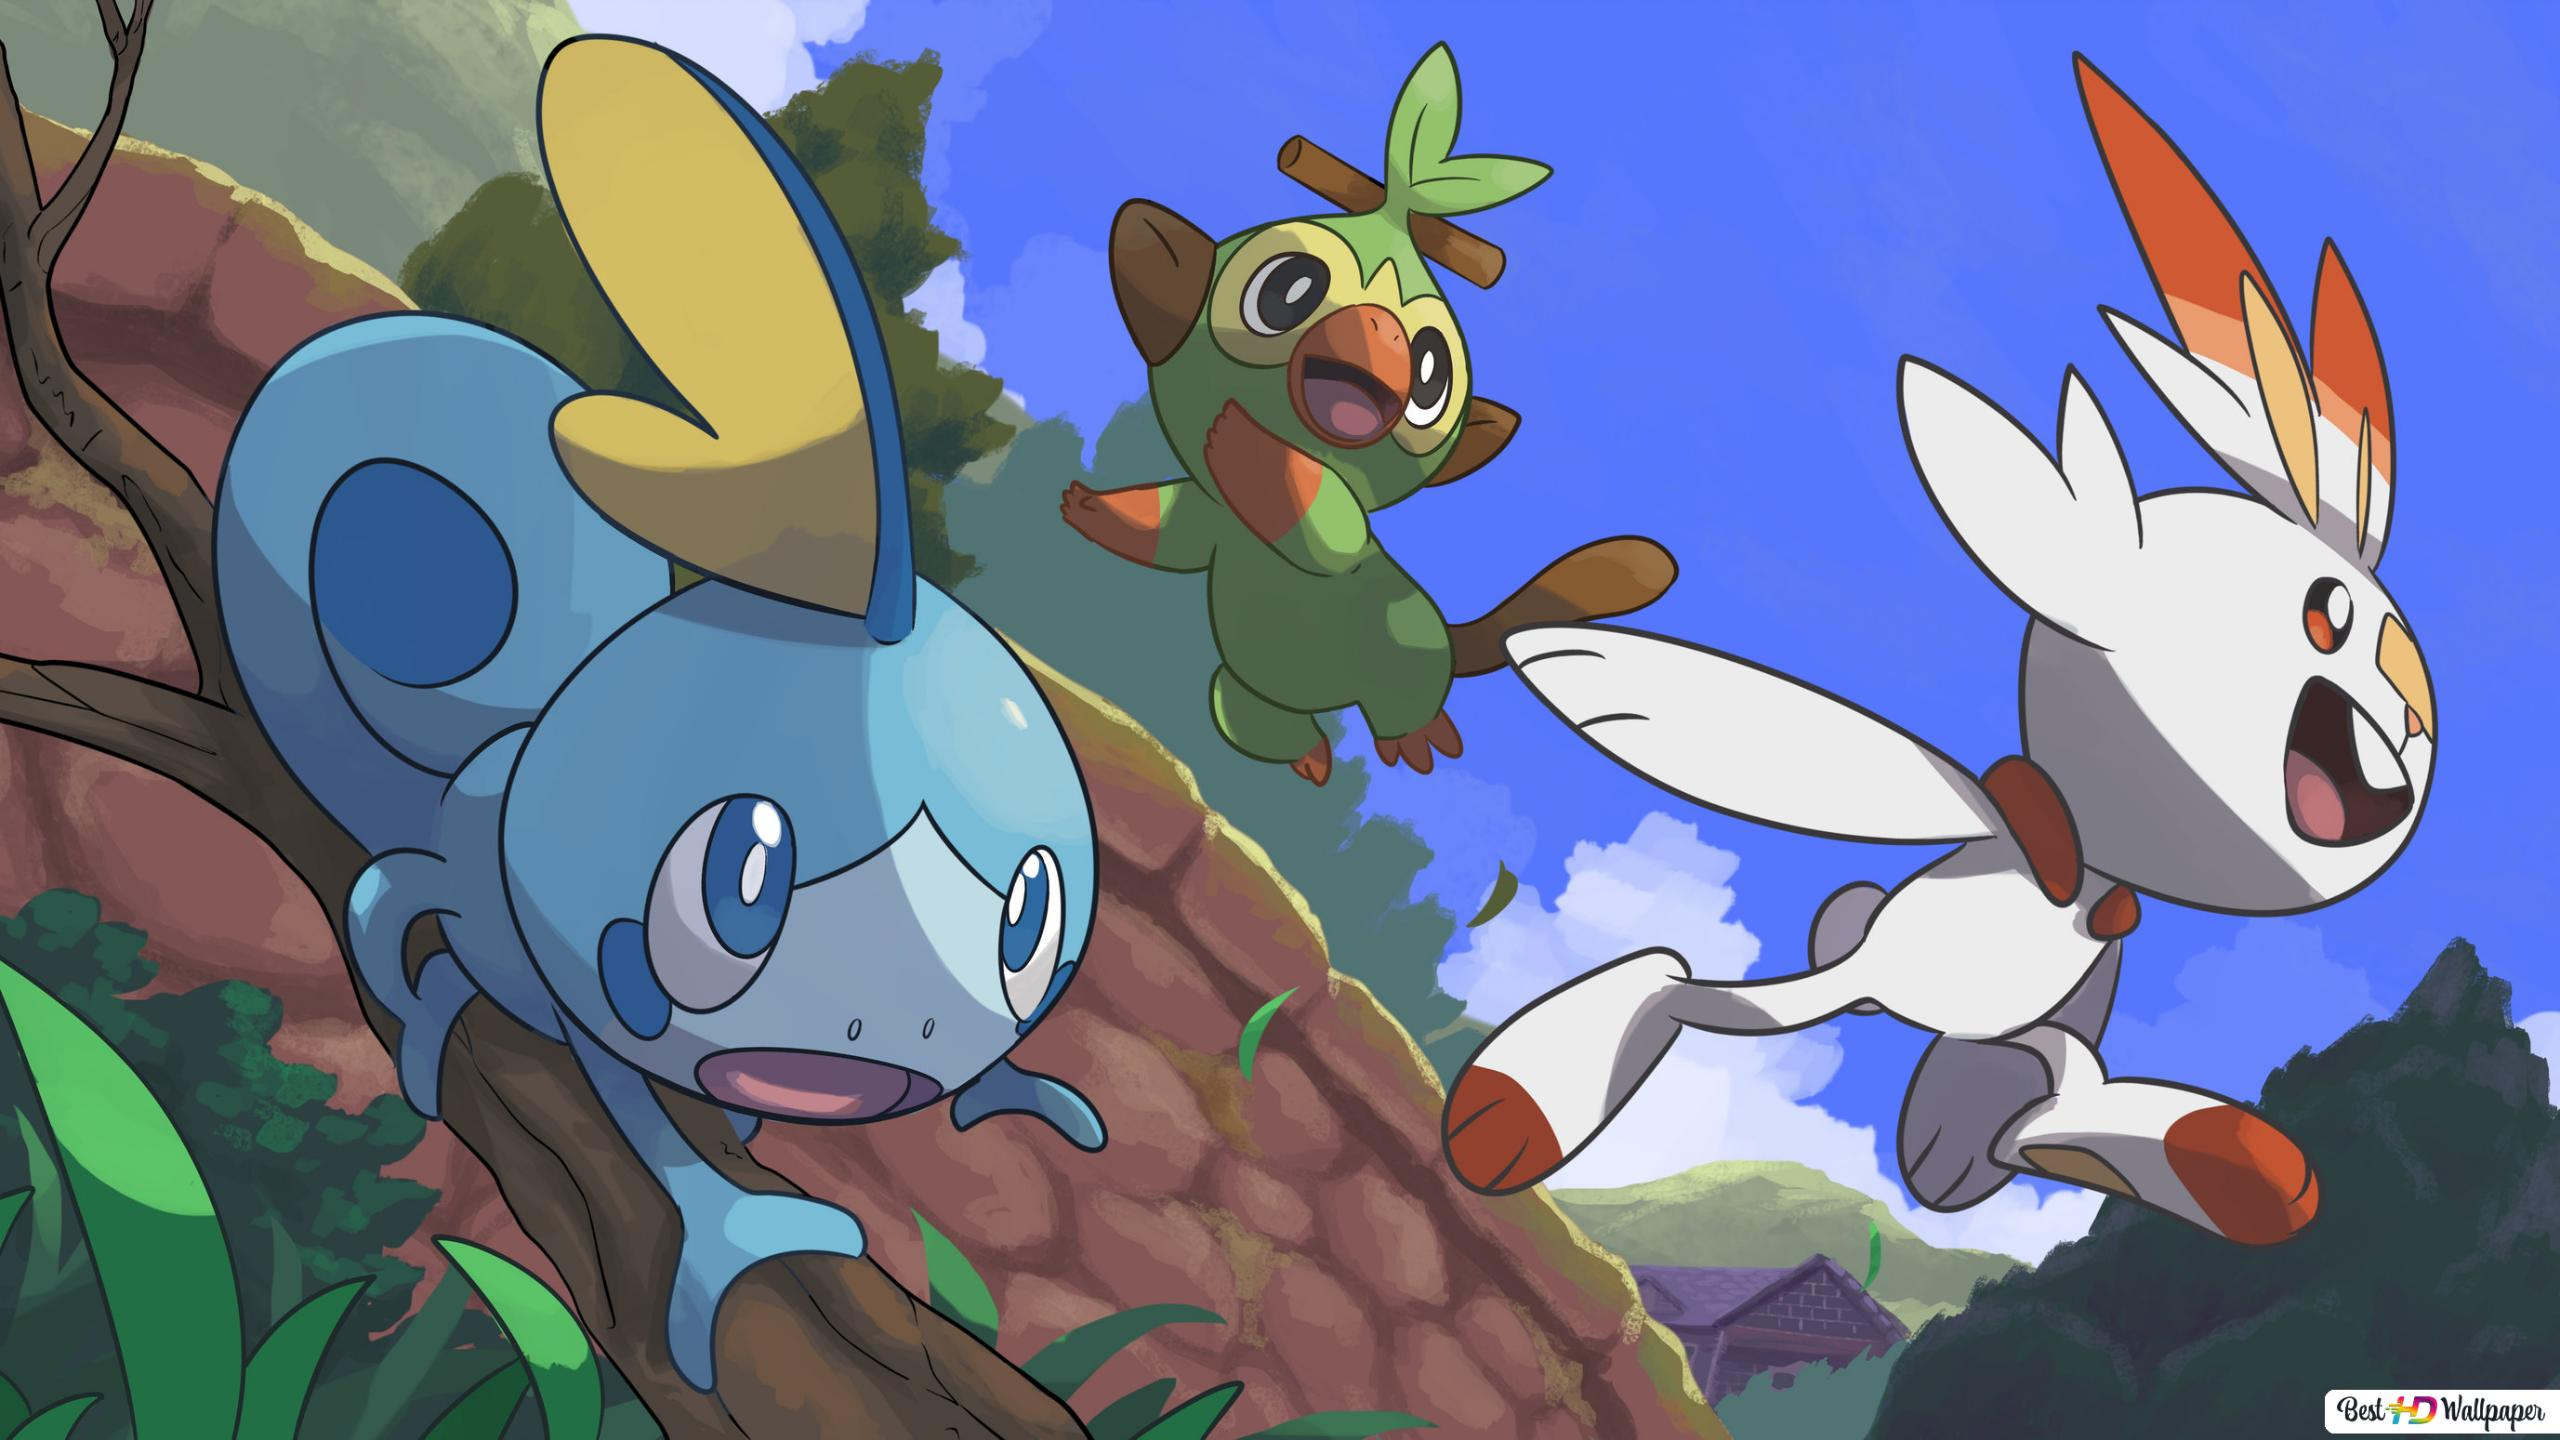 Pokemon Sword And Shield Sobble Grookey Scorbunny Hd Wallpaper Download Download all cool wallpapers and use them even for commercial projects. pokemon sword and shield sobble